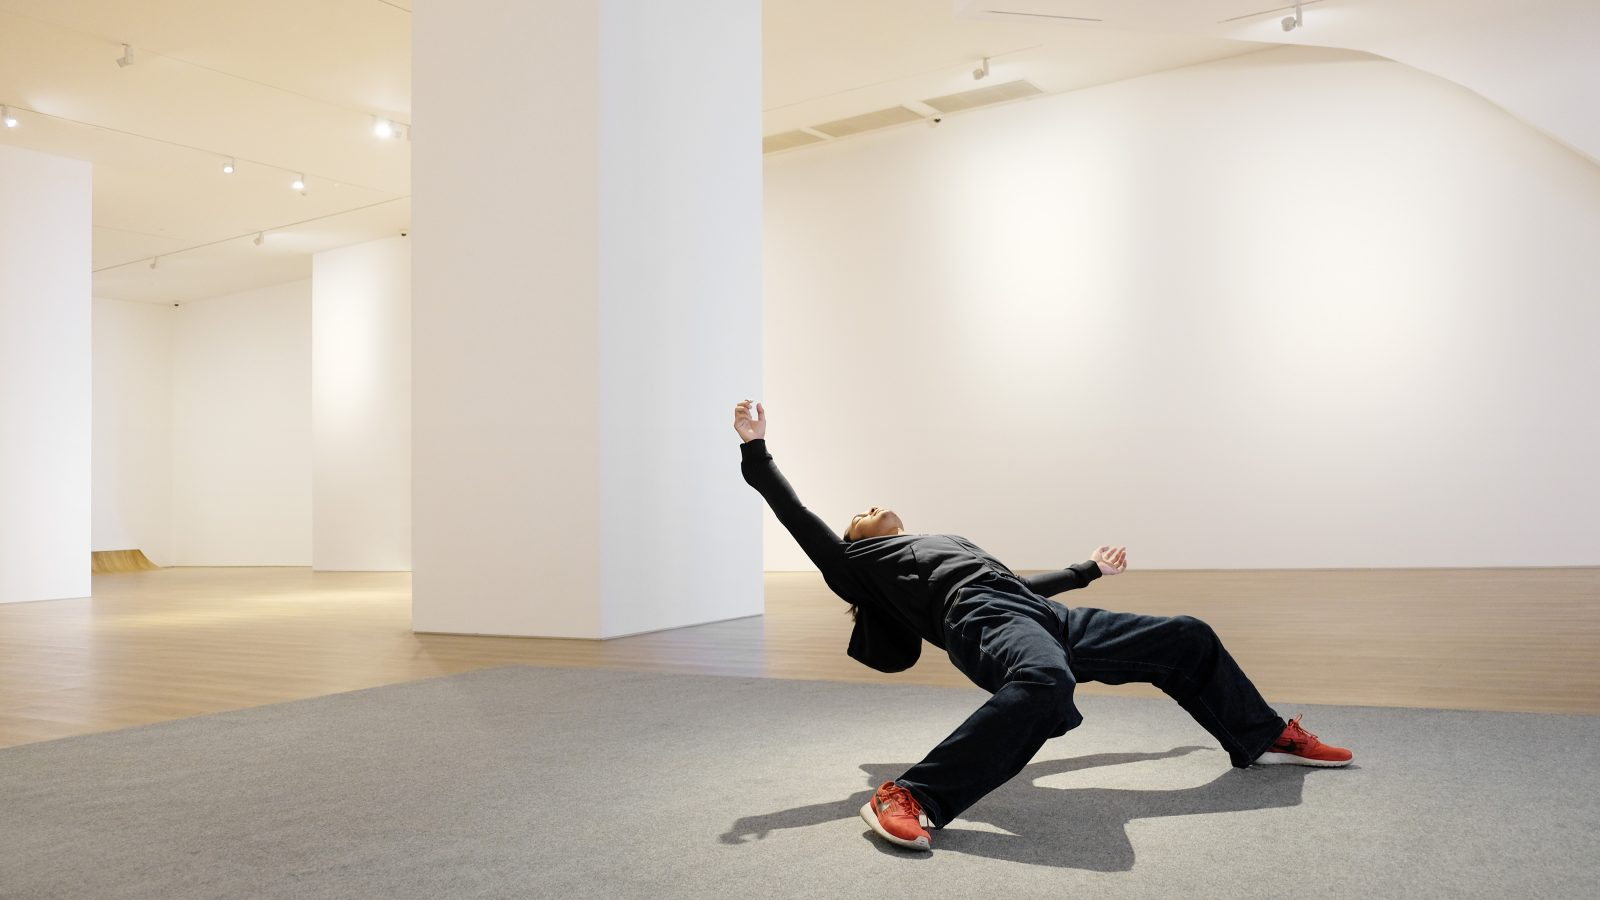 SuttonPR – Museums, Galleries - Museum Macan - Xu Zhen